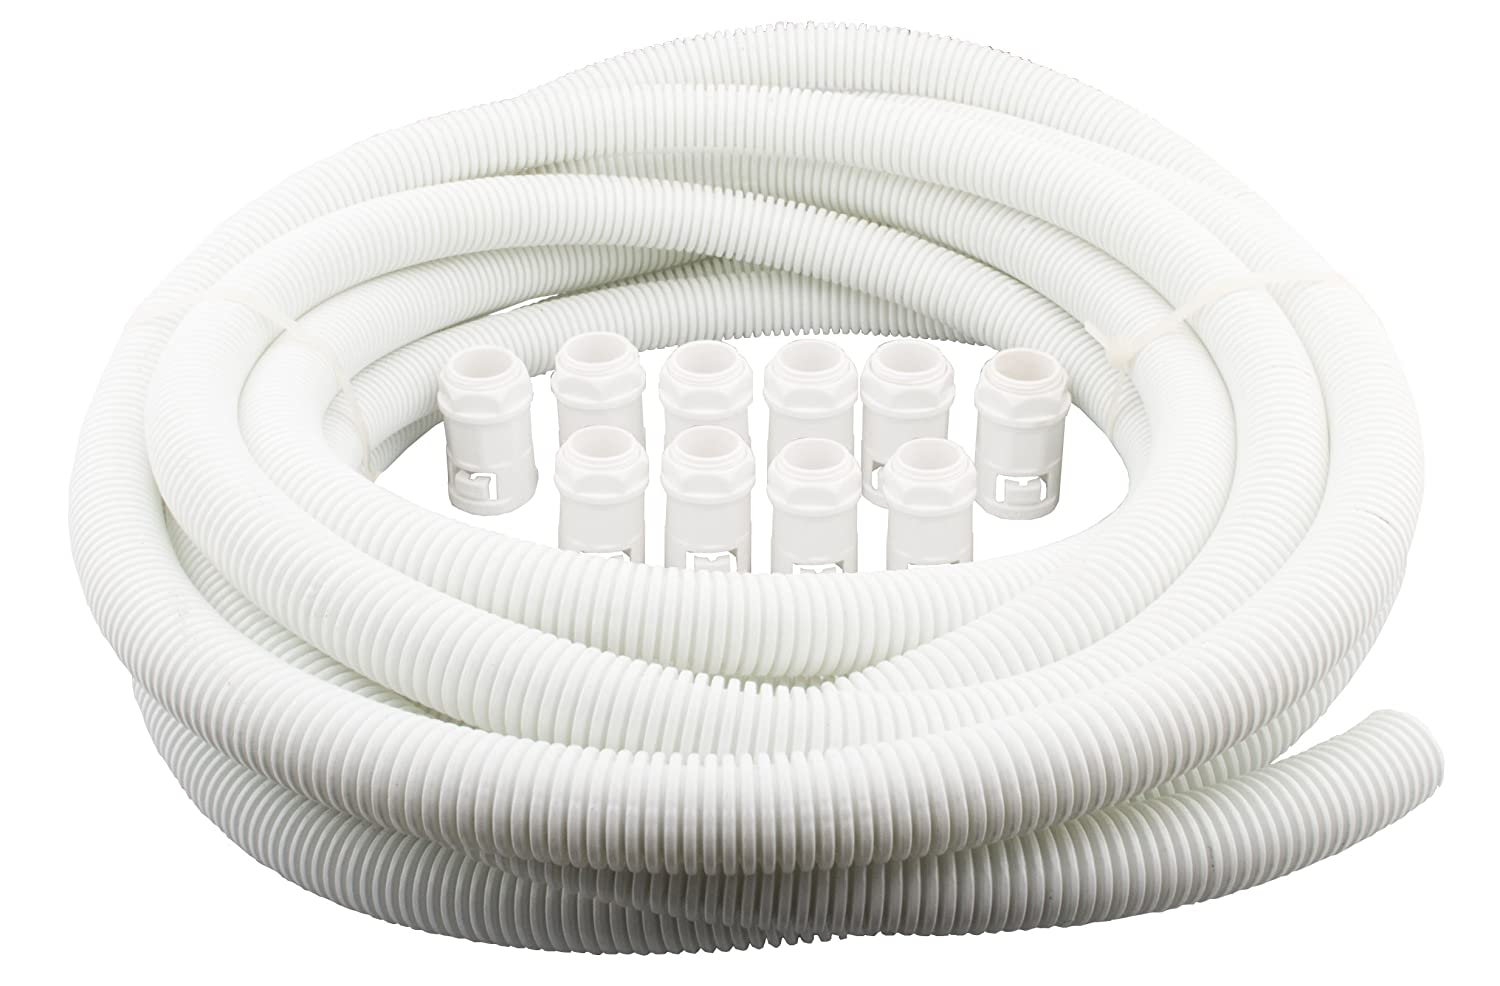 PDU Online 25MM Flexible Corrugated Conduit Contractor Pack WHITE 10 METRE PACK c/w 10 GLANDS